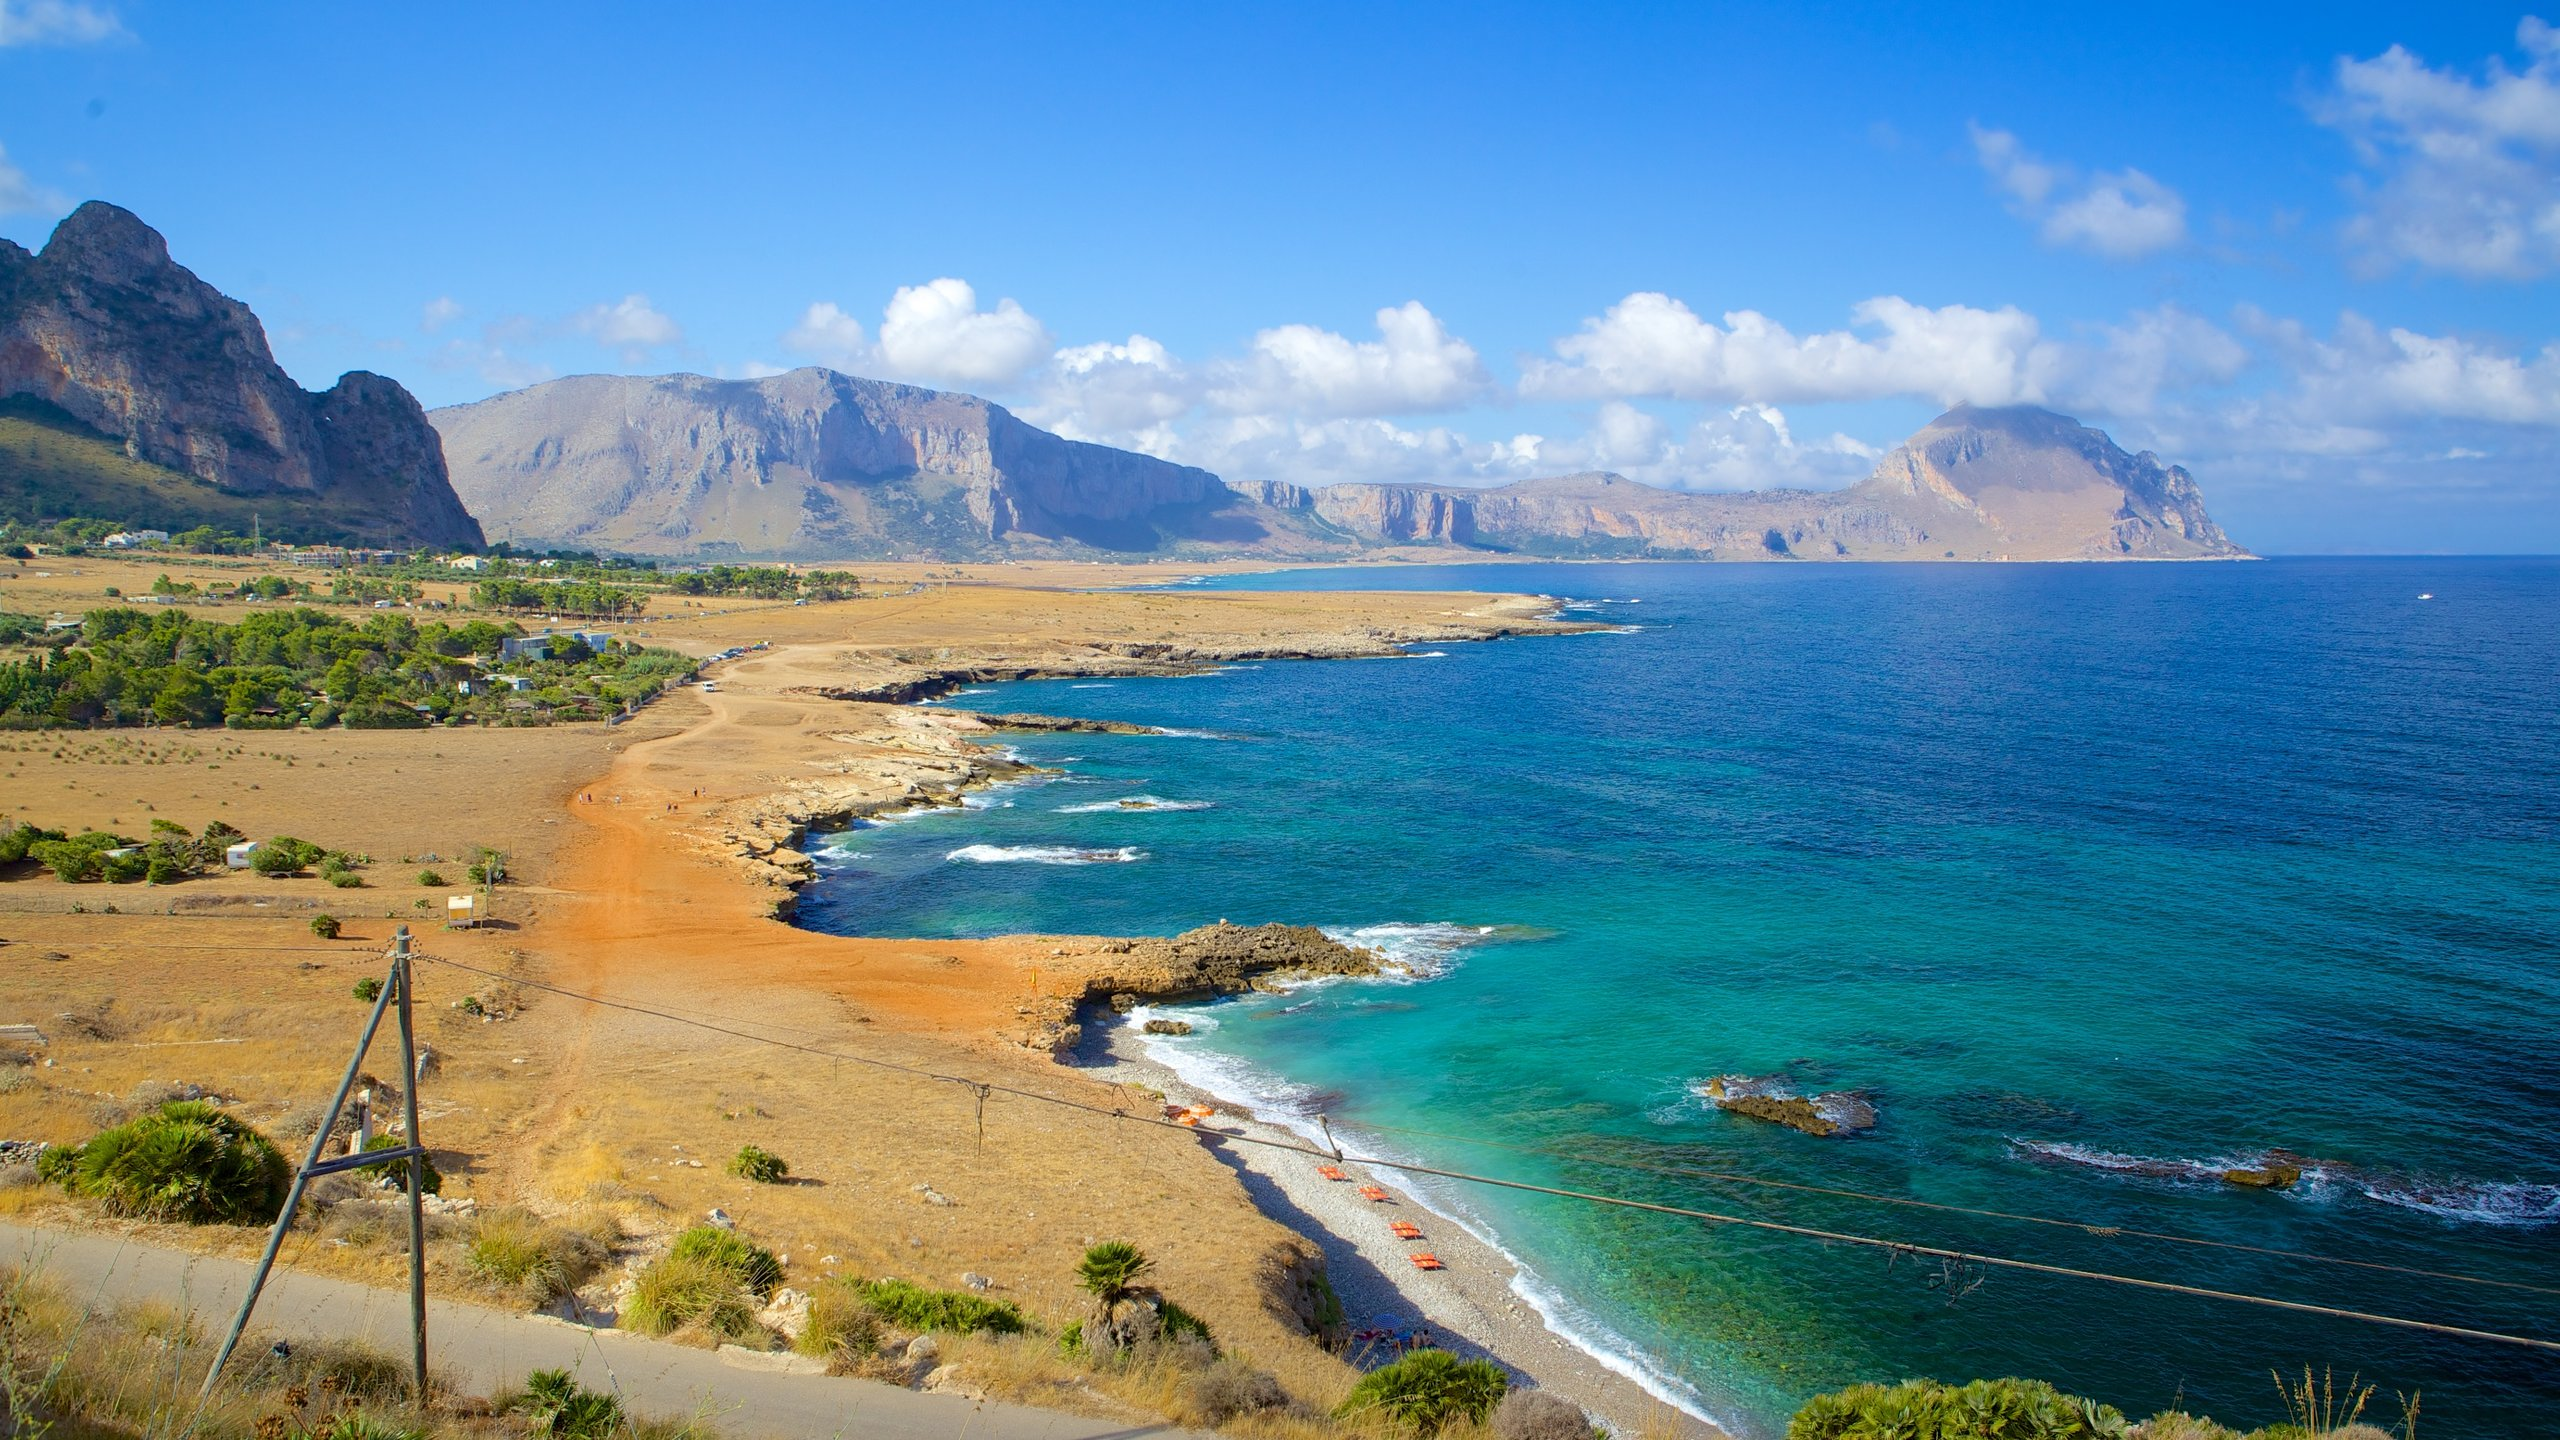 Province of Trapani, Sicily, Italy